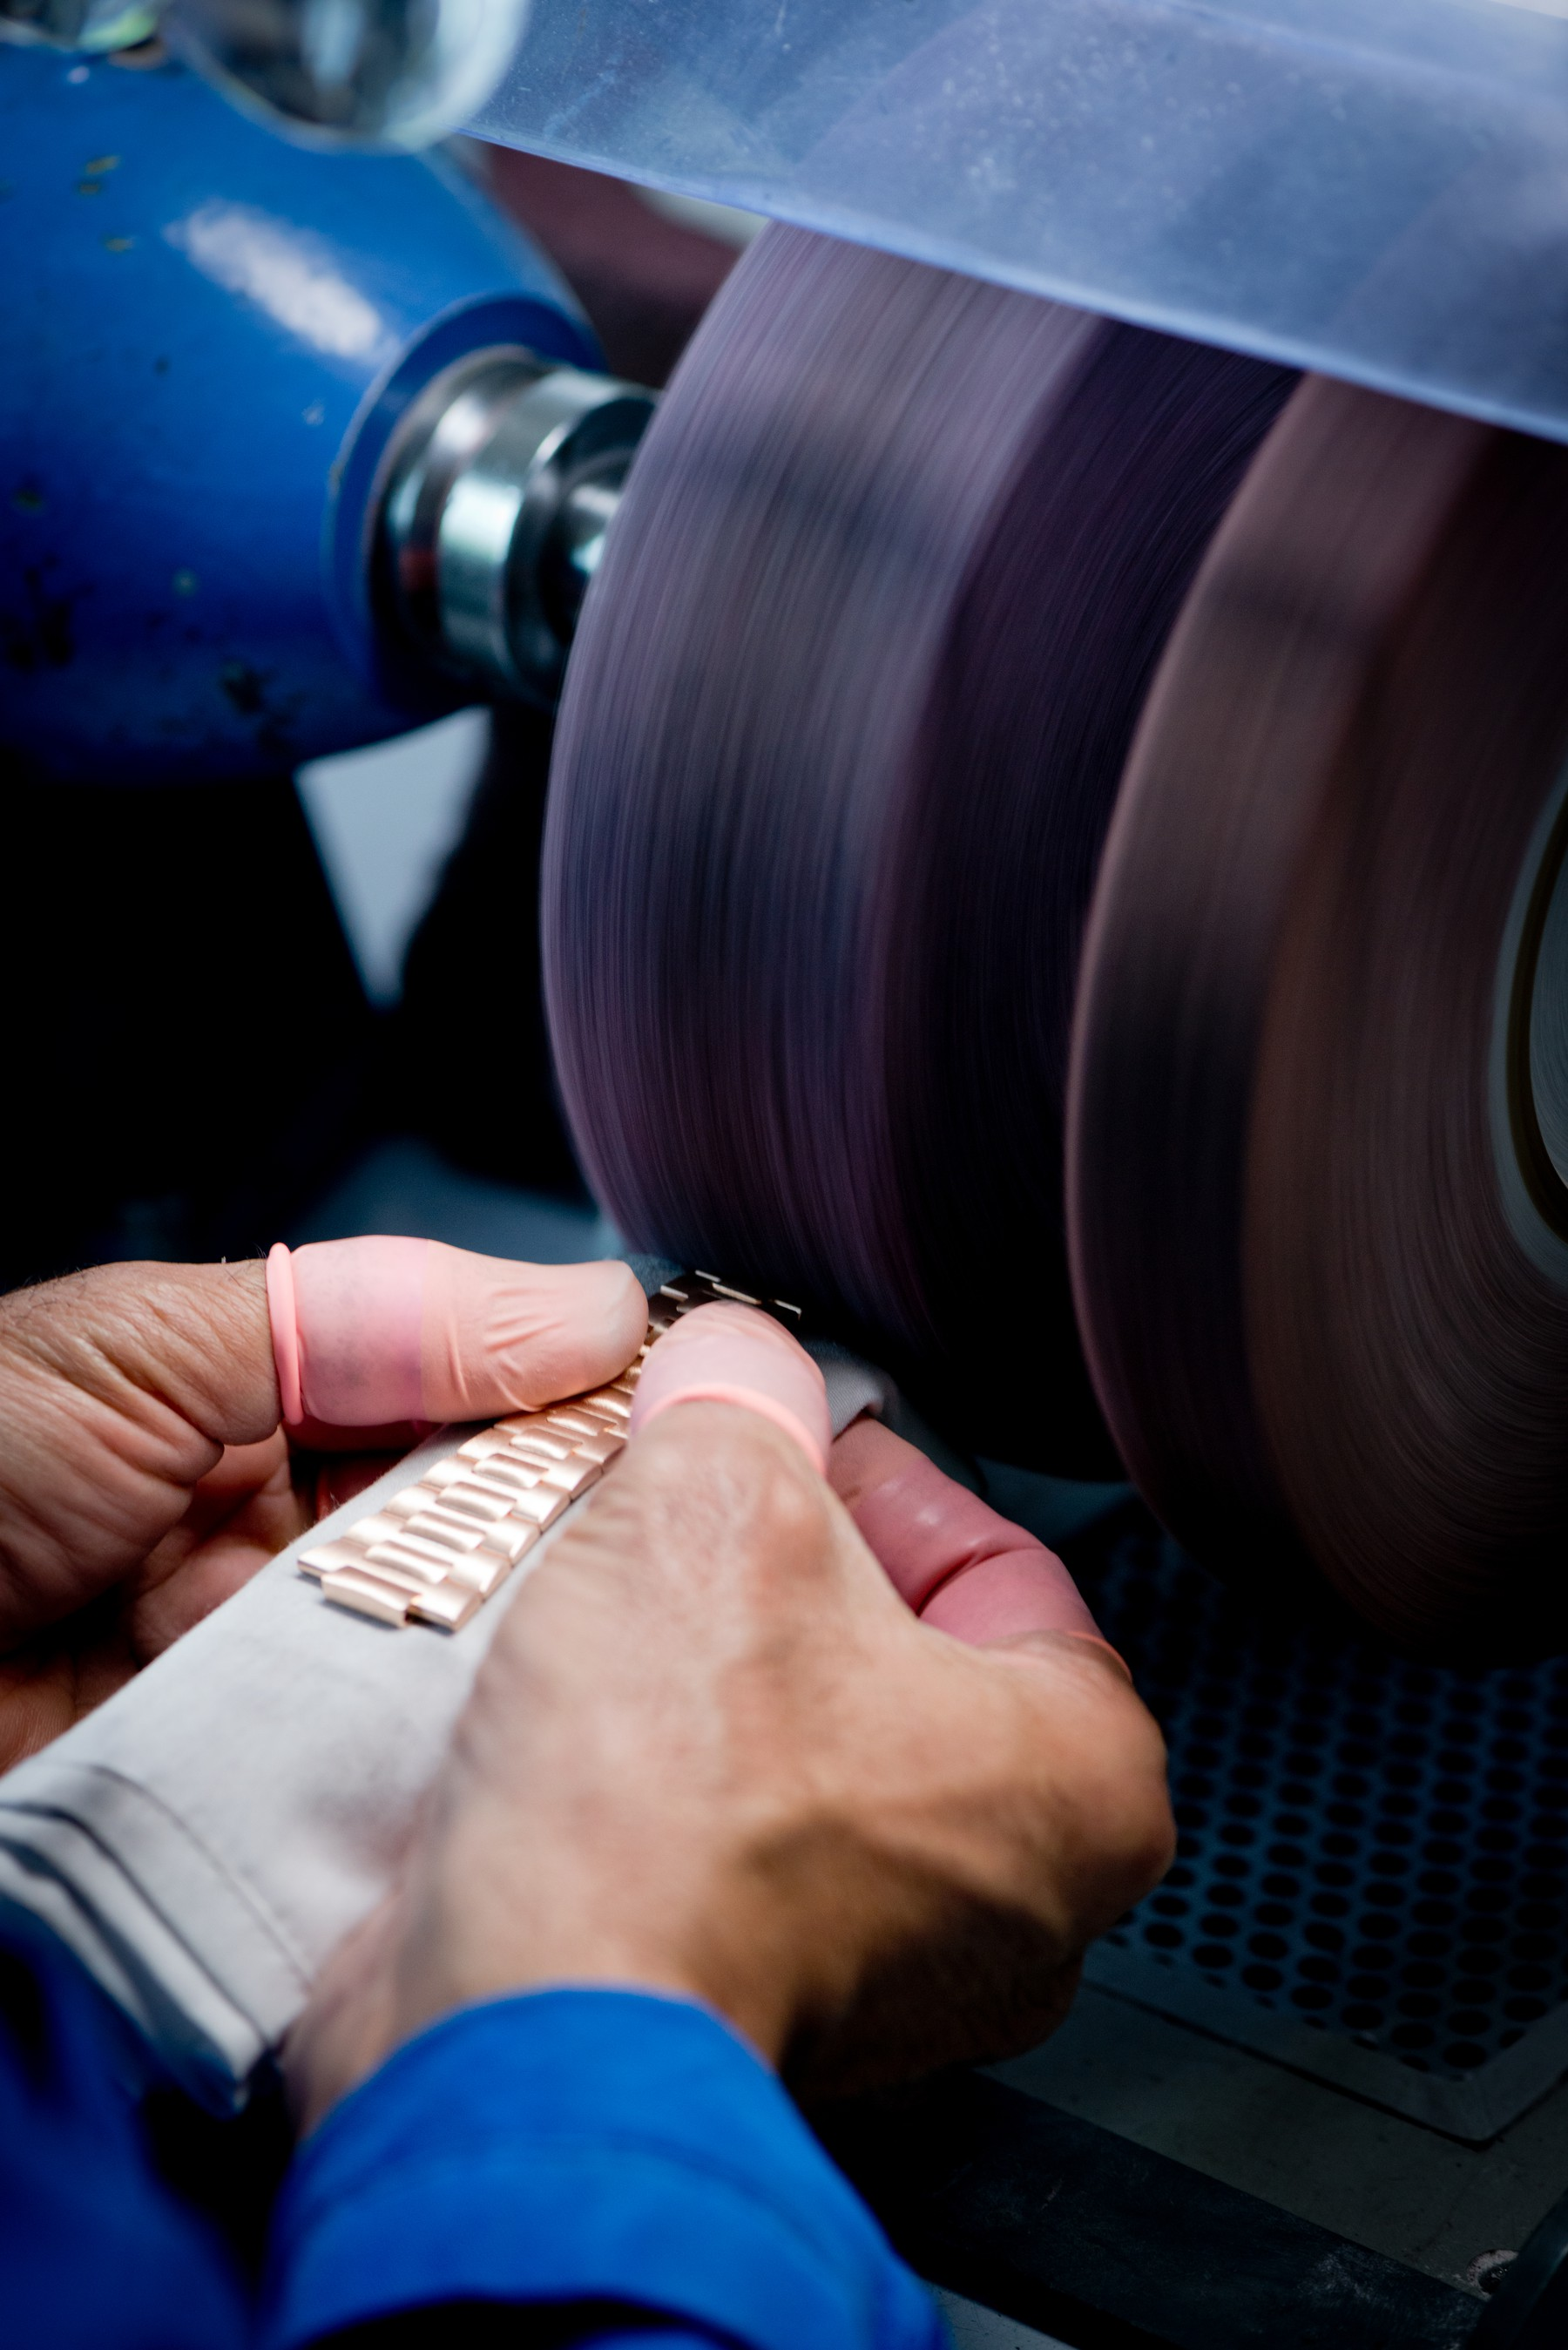 Baselworld 2019 Detailed Chainsmith's Art in Haute Horlogerie - Chain Polishing baselworld 2019 Baselworld 2019: Detailed Chainsmith's Art in Haute Horlogerie Baselworld 2019 Detailed Chainsmith   s Art in Haute Horlogerie Chain Polishing